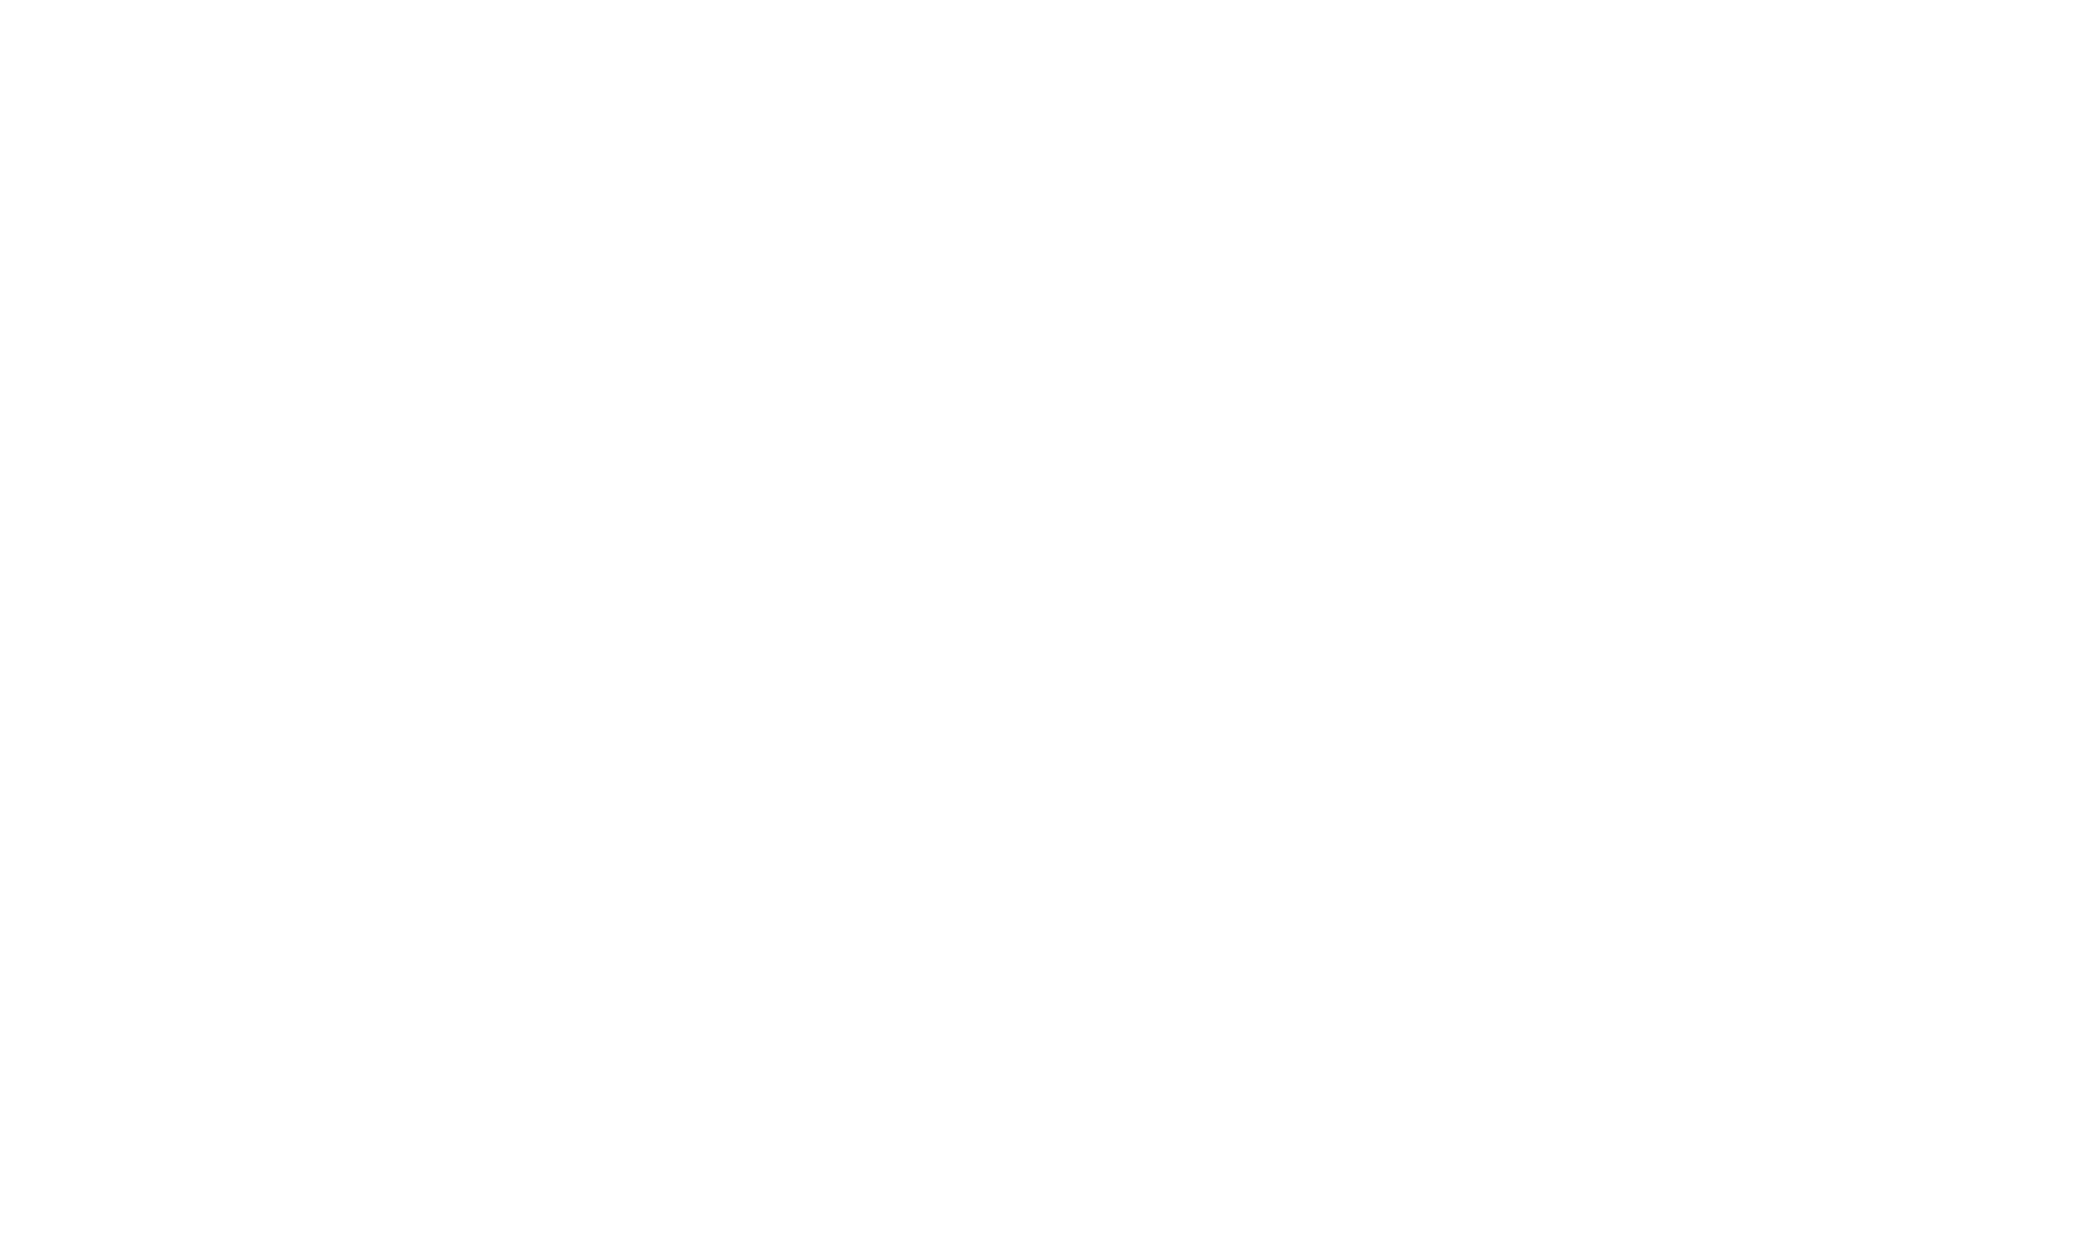 Strengthening Our Communities Campaign